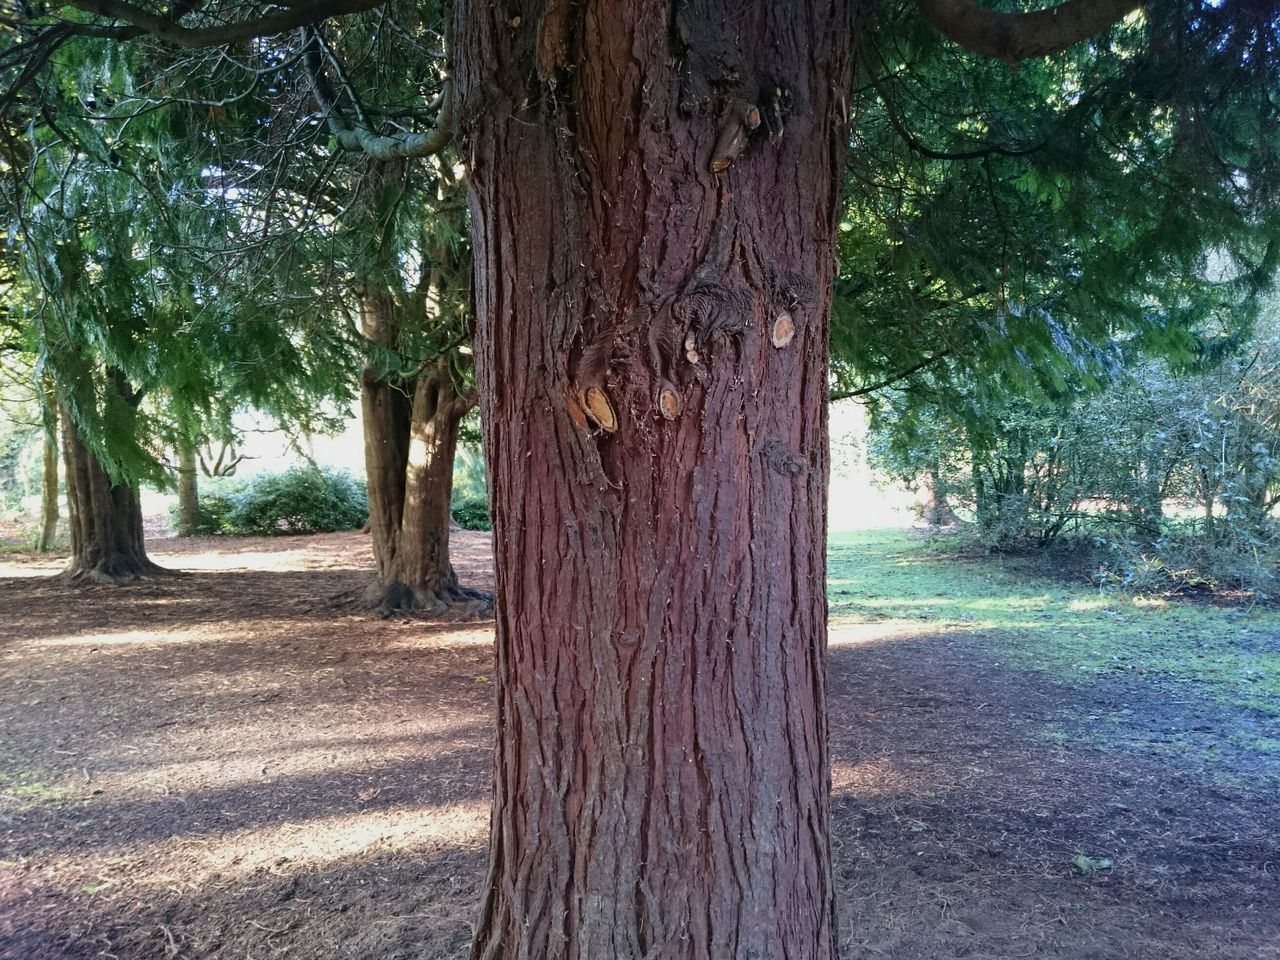 tree, tree trunk, nature, growth, no people, day, outdoors, forest, beauty in nature, branch